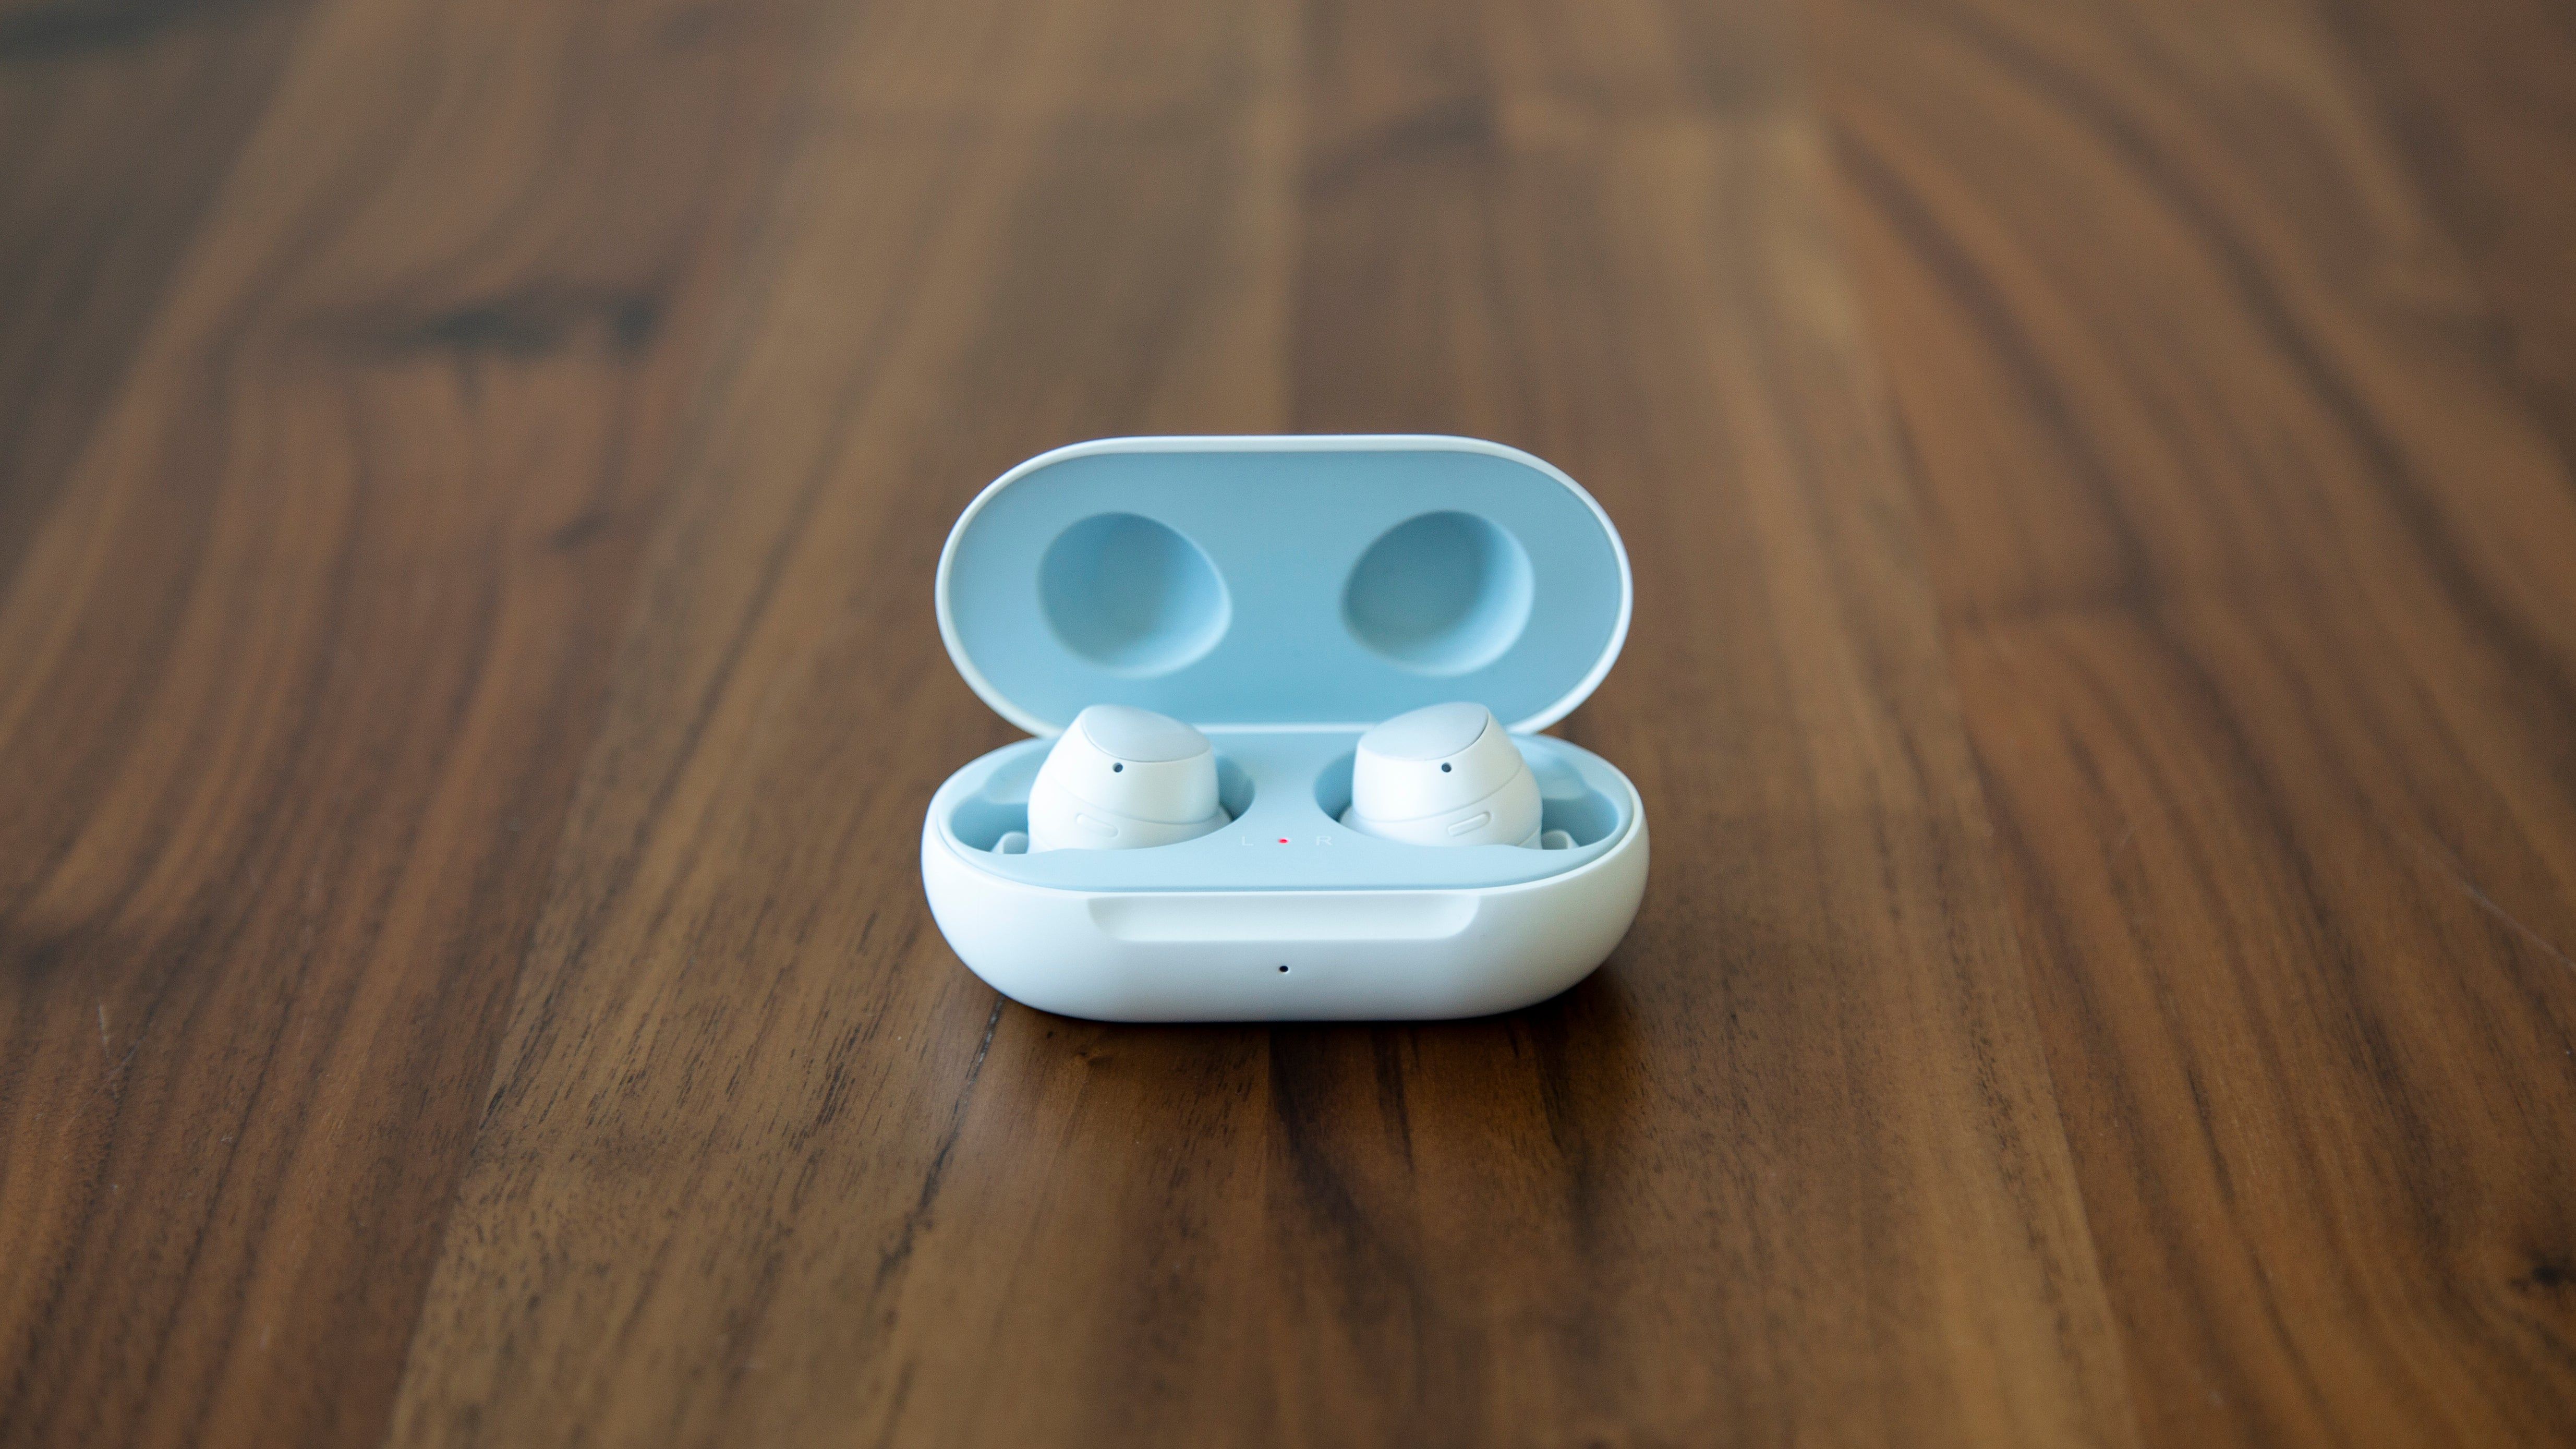 Samsung's New Galaxy Buds Almost Give AirPods A Run For Their Money